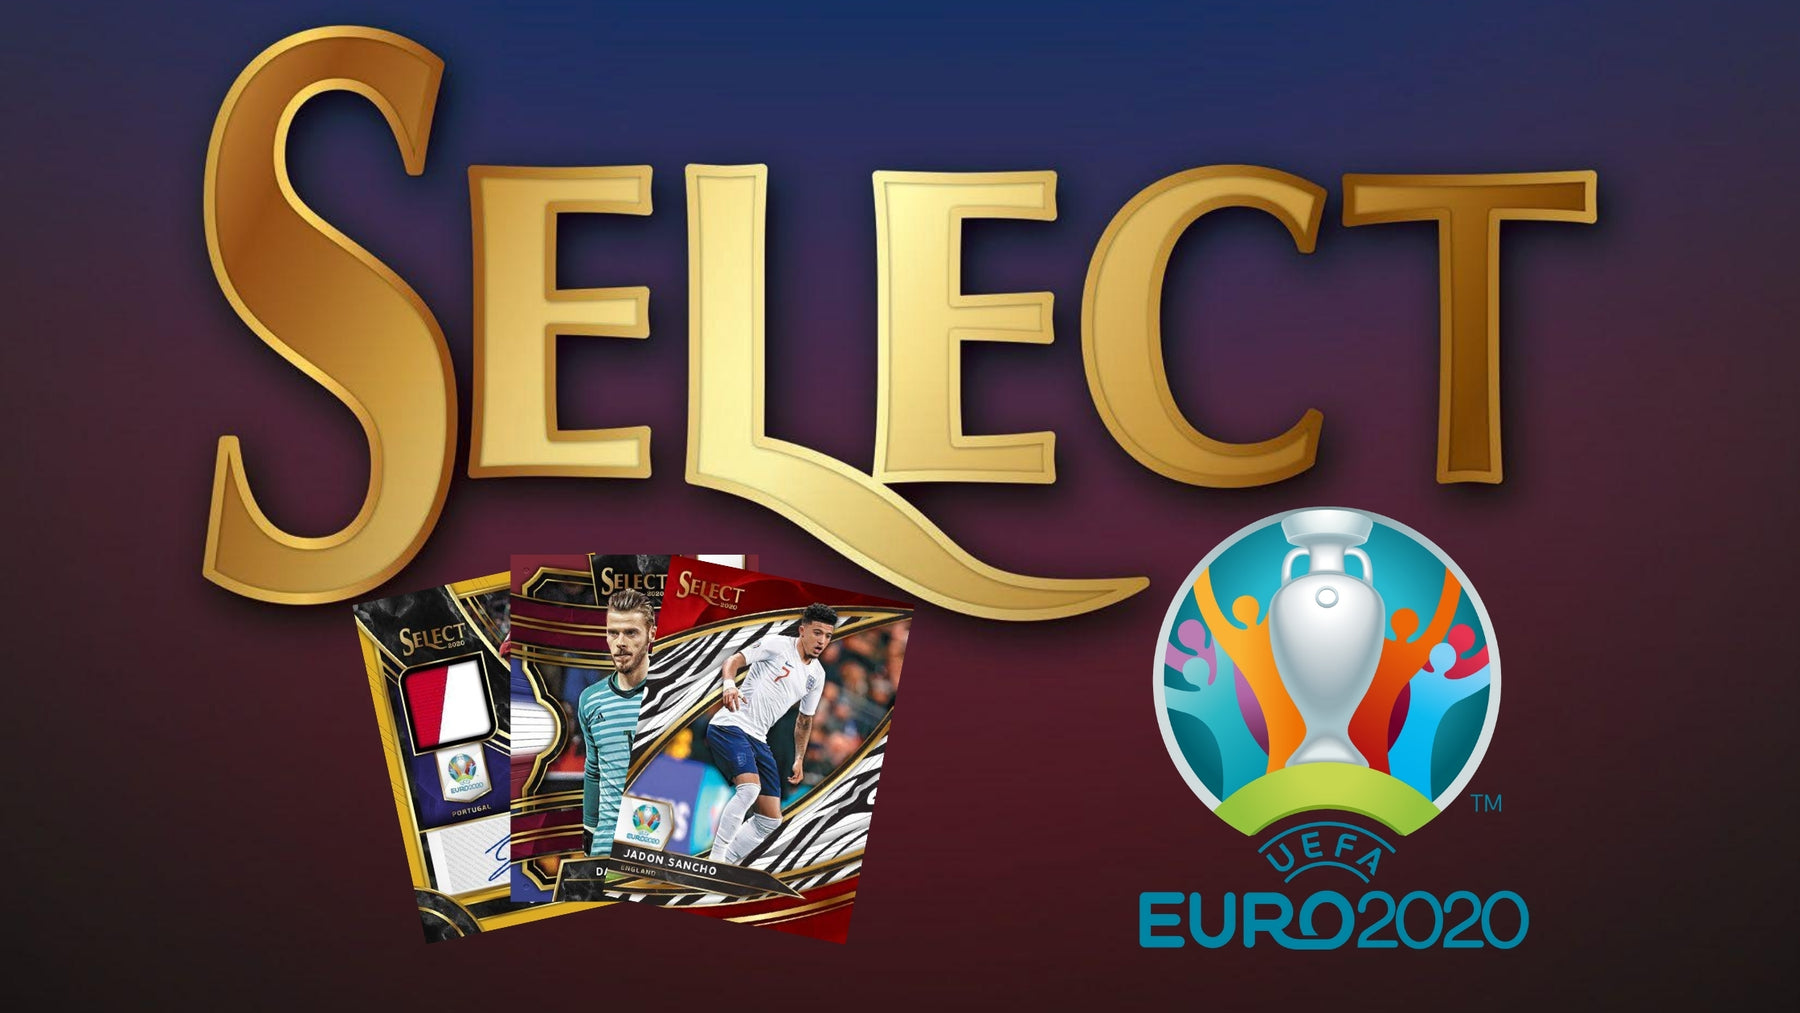 2020 Panini Select UEFA Euro Soccer Cards Debut!